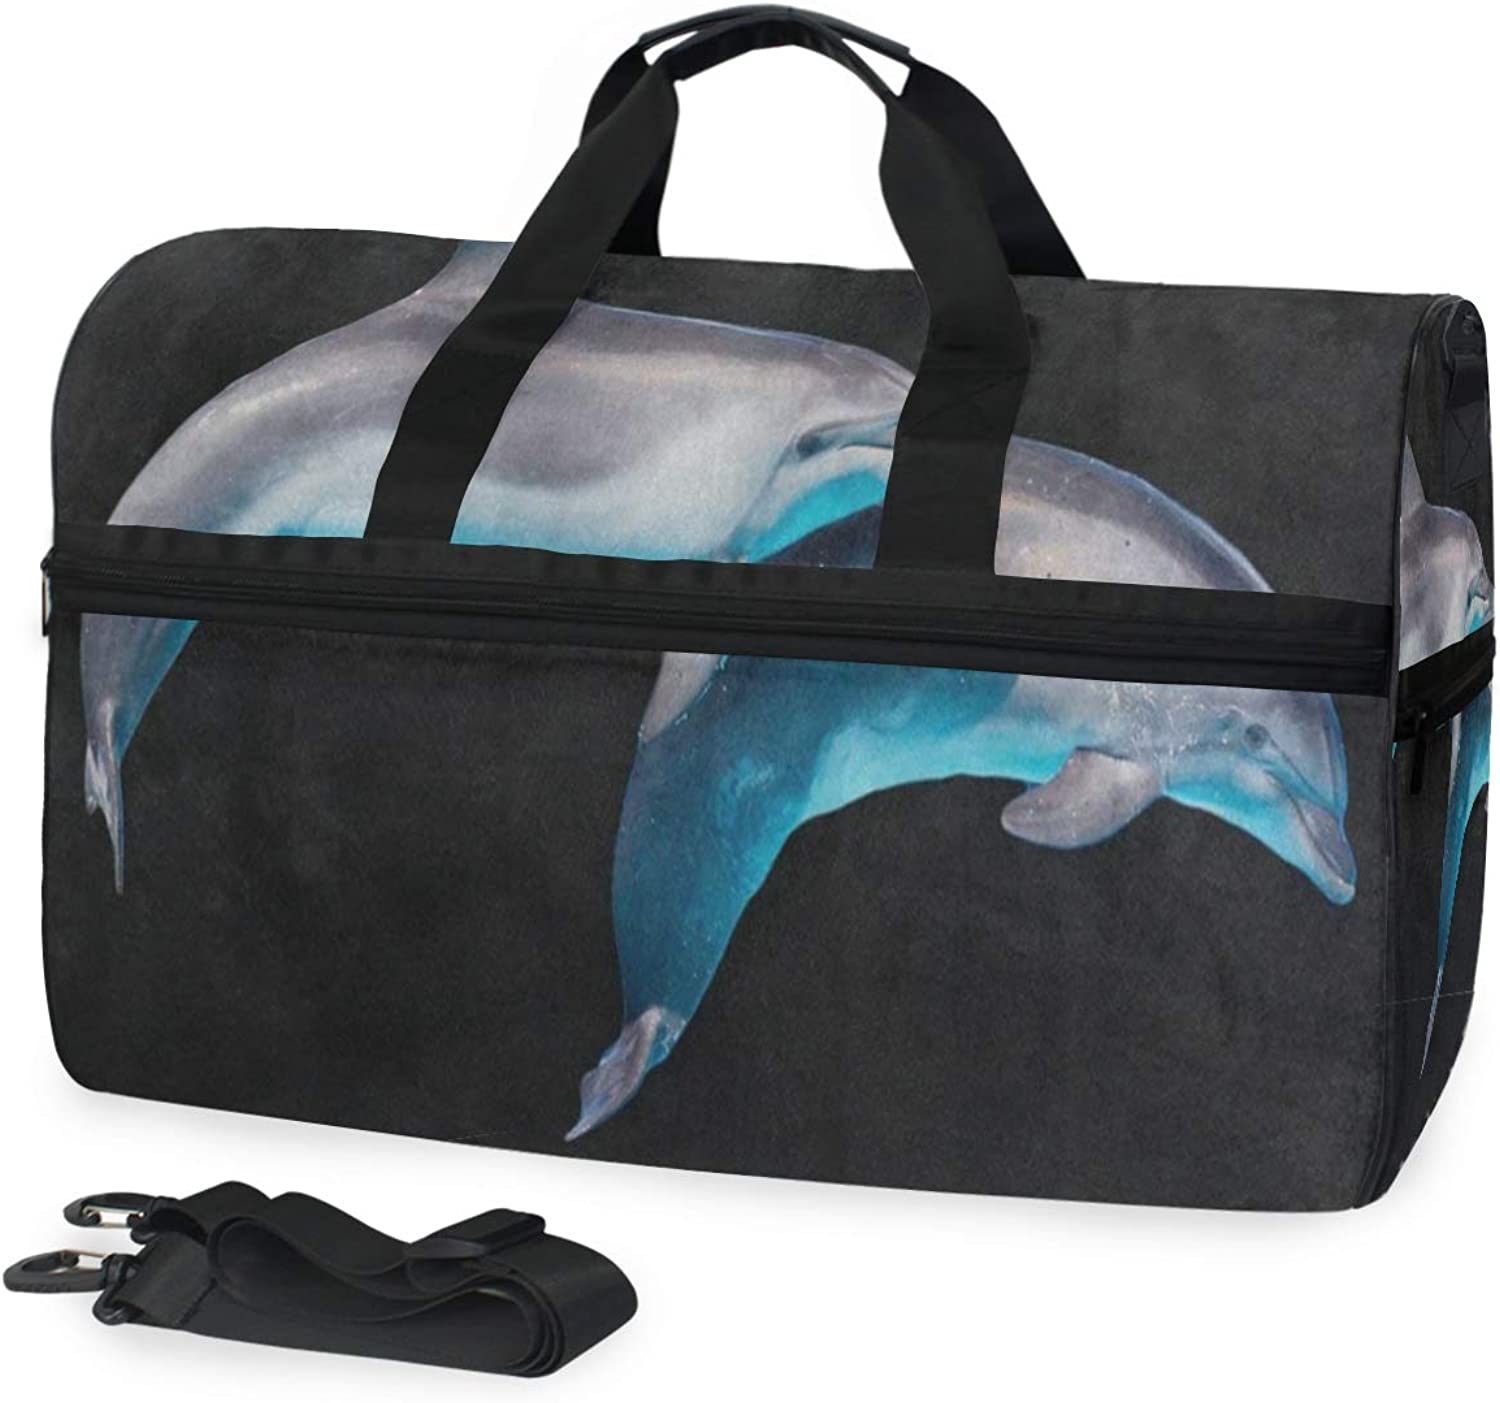 Animal Dolphin Fish Black Gym Bag with shoes Compartment Sports Swim Travel Overnight Duffels